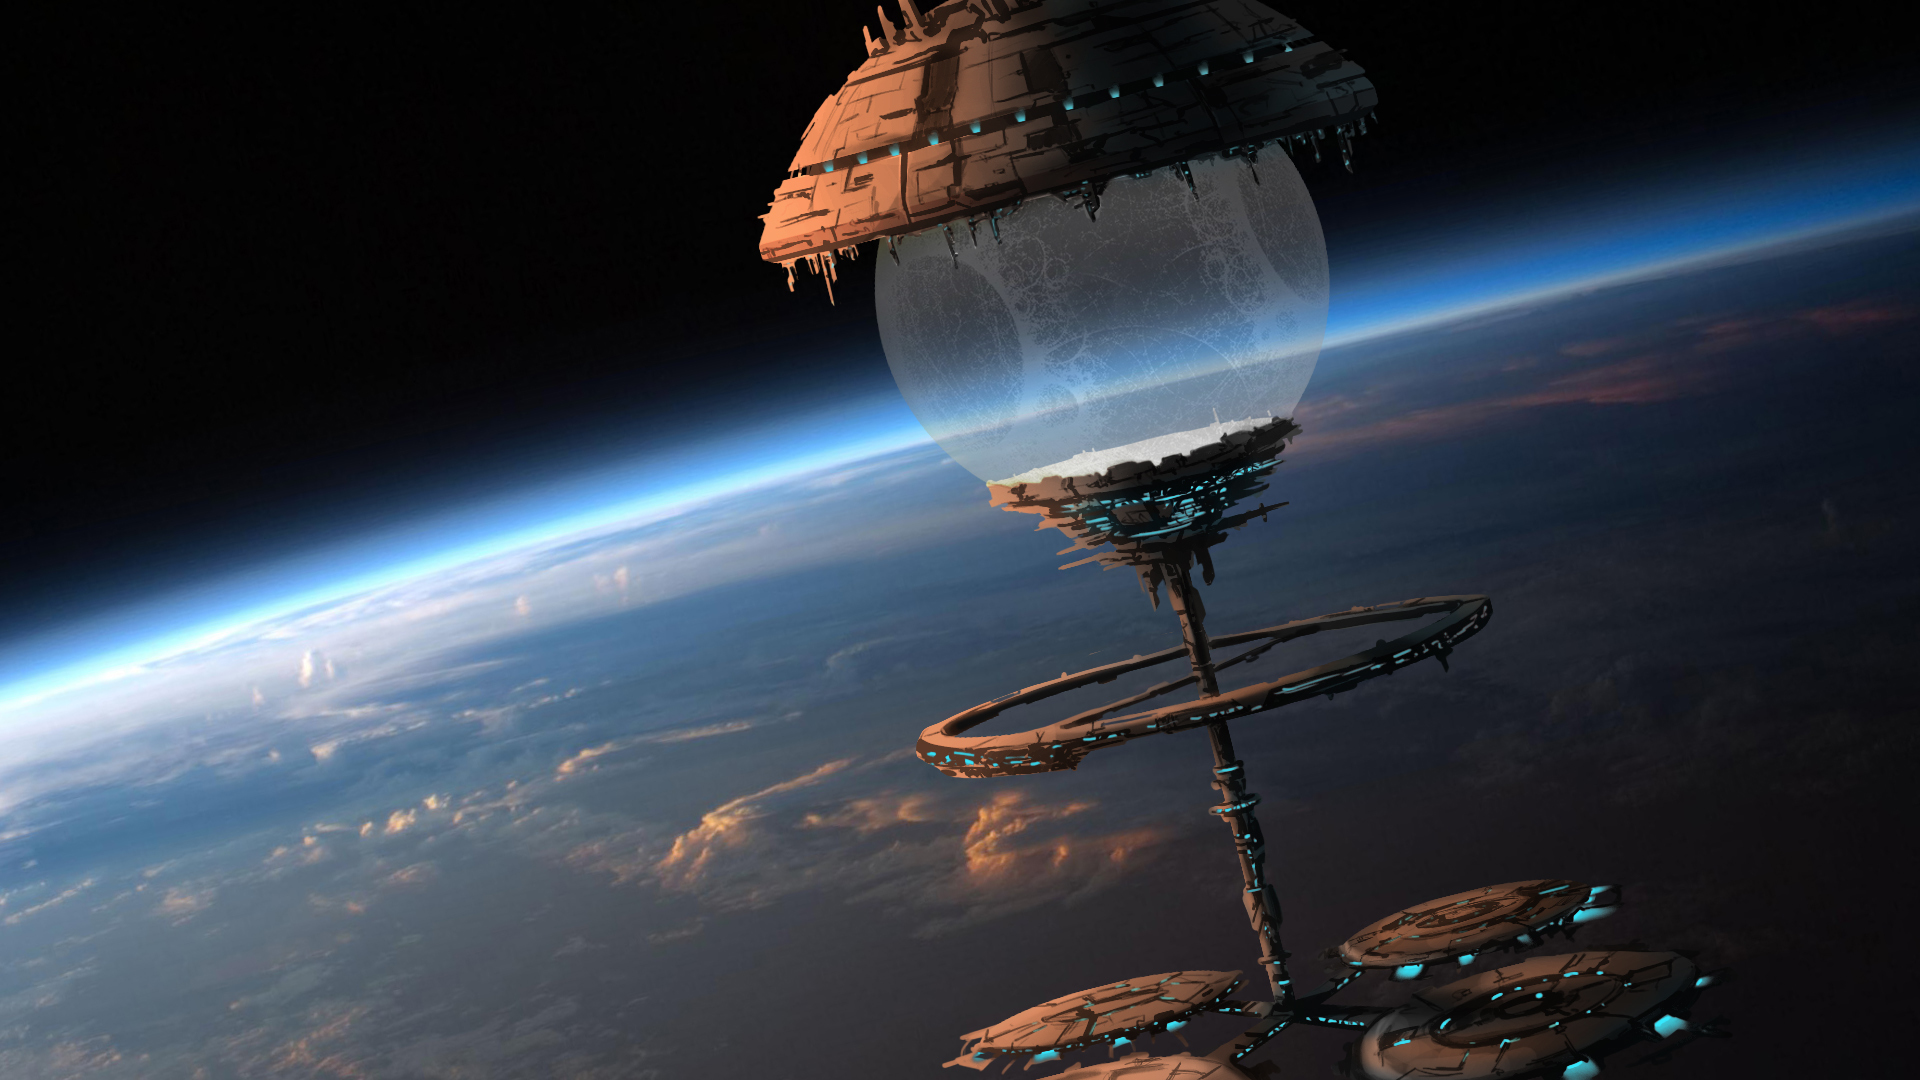 spacecraft circling earth - photo #48